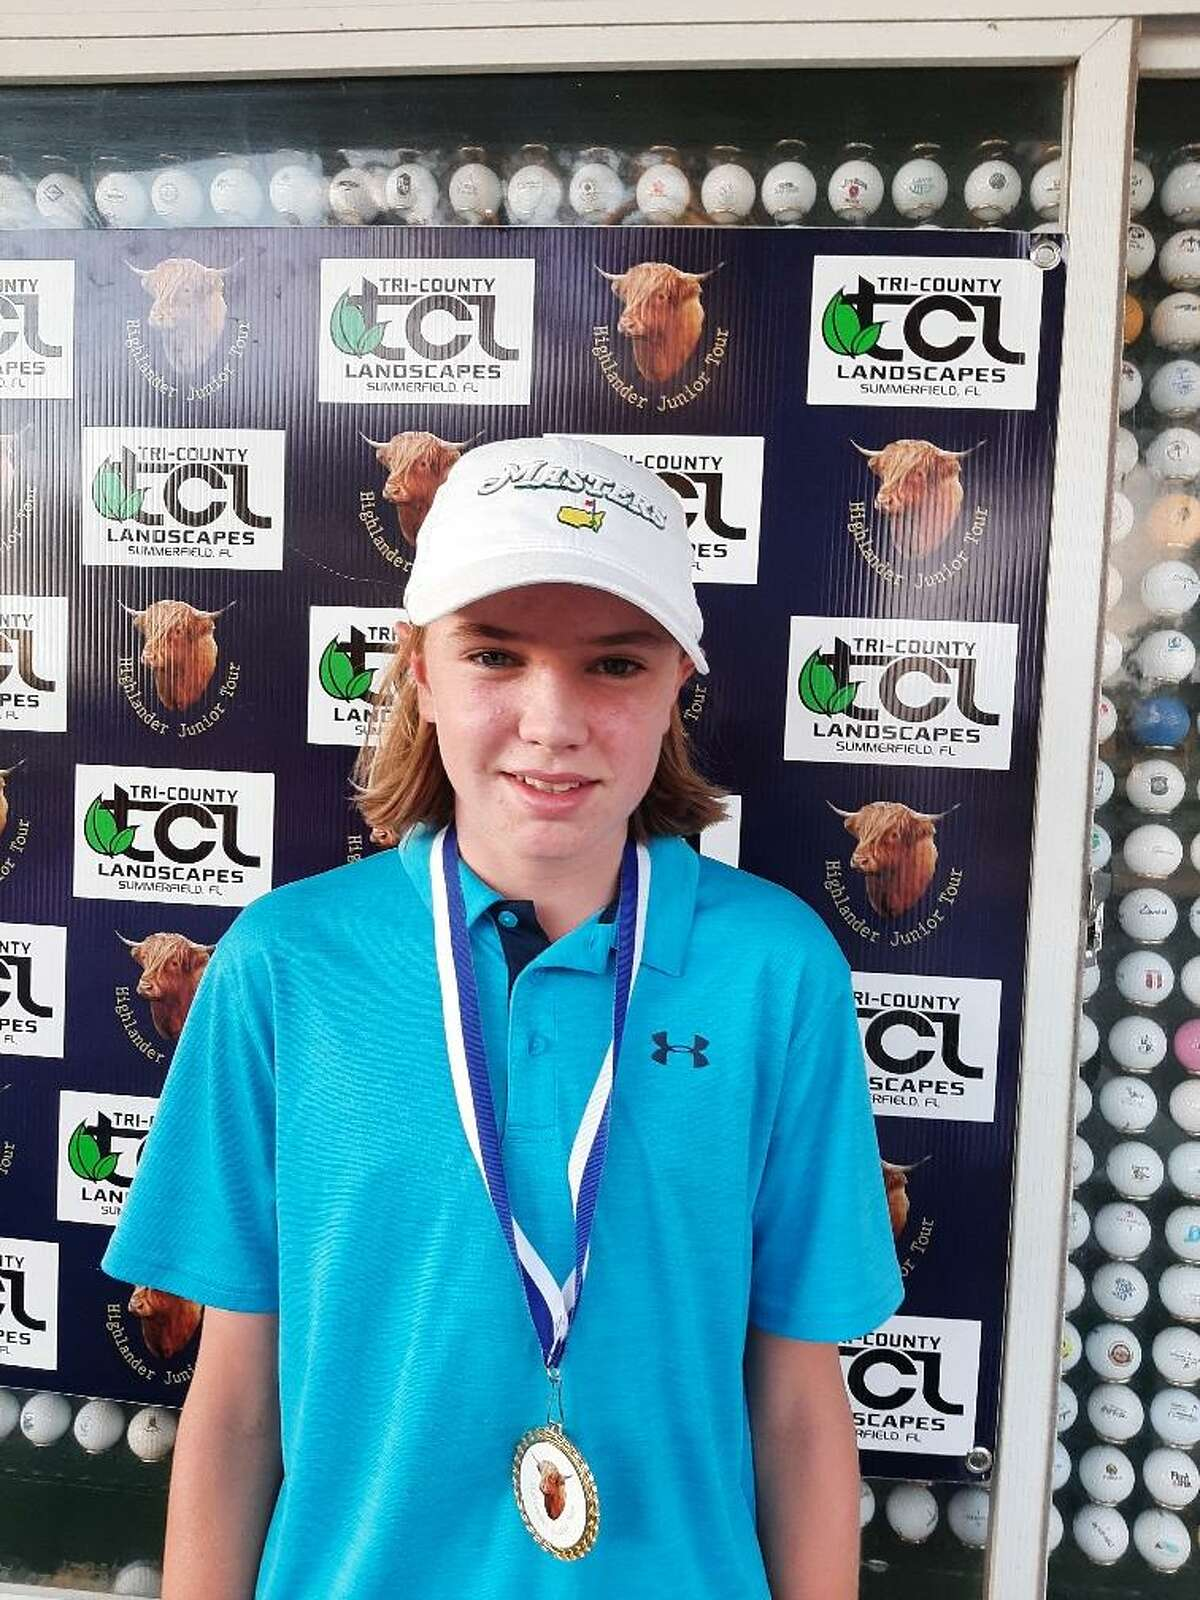 Brayden Dock, a 14-year-old from Queensbury, at a golf tournament in February in Florida.Dock will compete in the Drive, Chip and Putt national championship Sunday, April 4, 2021, at the Augusta National Golf Club. (Courtesy of Jeffrey Dock)